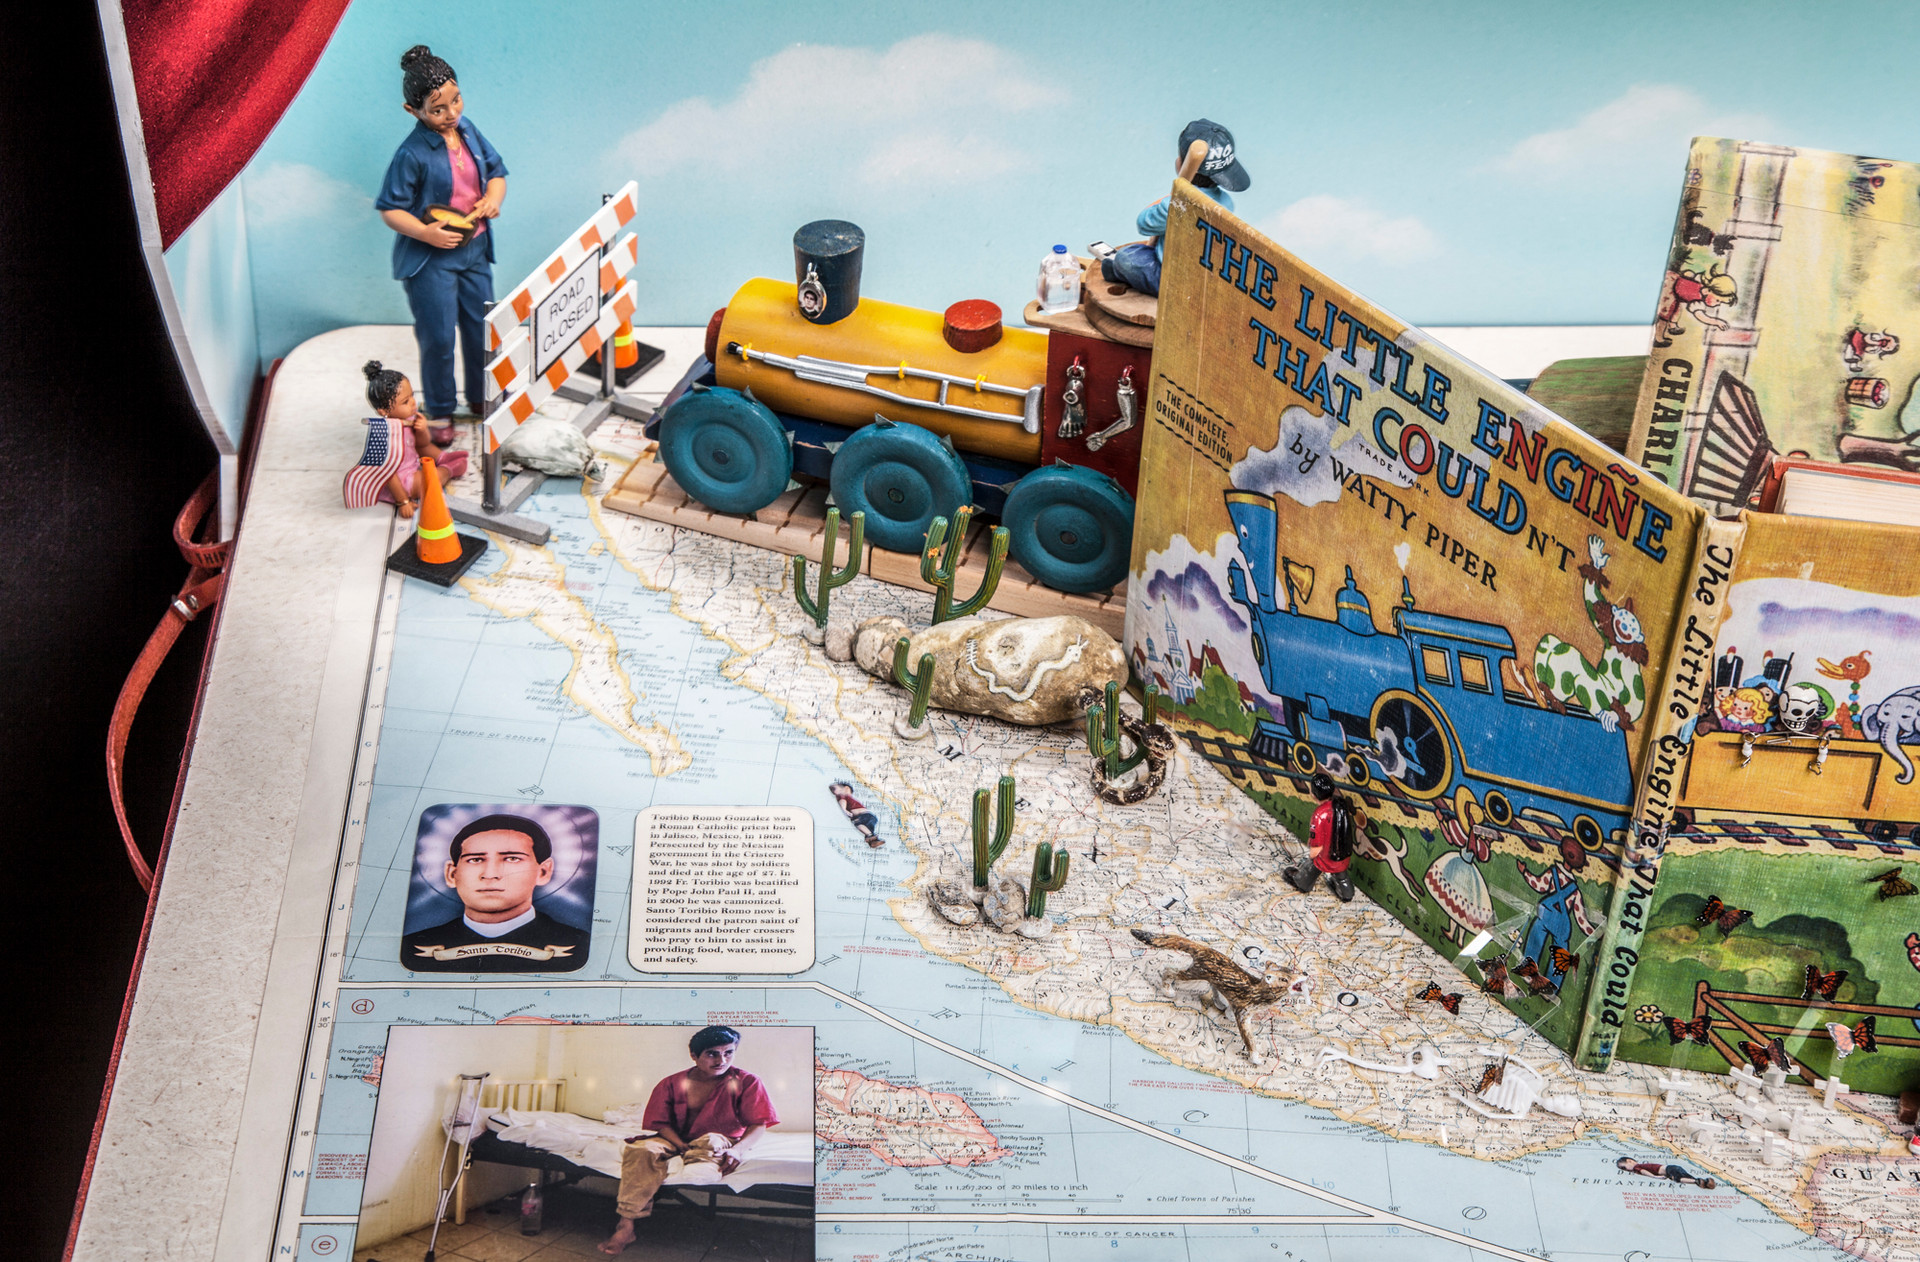 """The train approaching the end of its journey in North America. The mother awaits the boy riding on top of the train's engine. The boy carries a gallon of water, a cell phone, and baseball bat, and wears a hat that reads """"No Fear"""". The engine is decorated with milagros and a crutch; its wheels are inset with X-Acto knife blades, all signifying perils of this journey in which many of the riders lose limbs."""